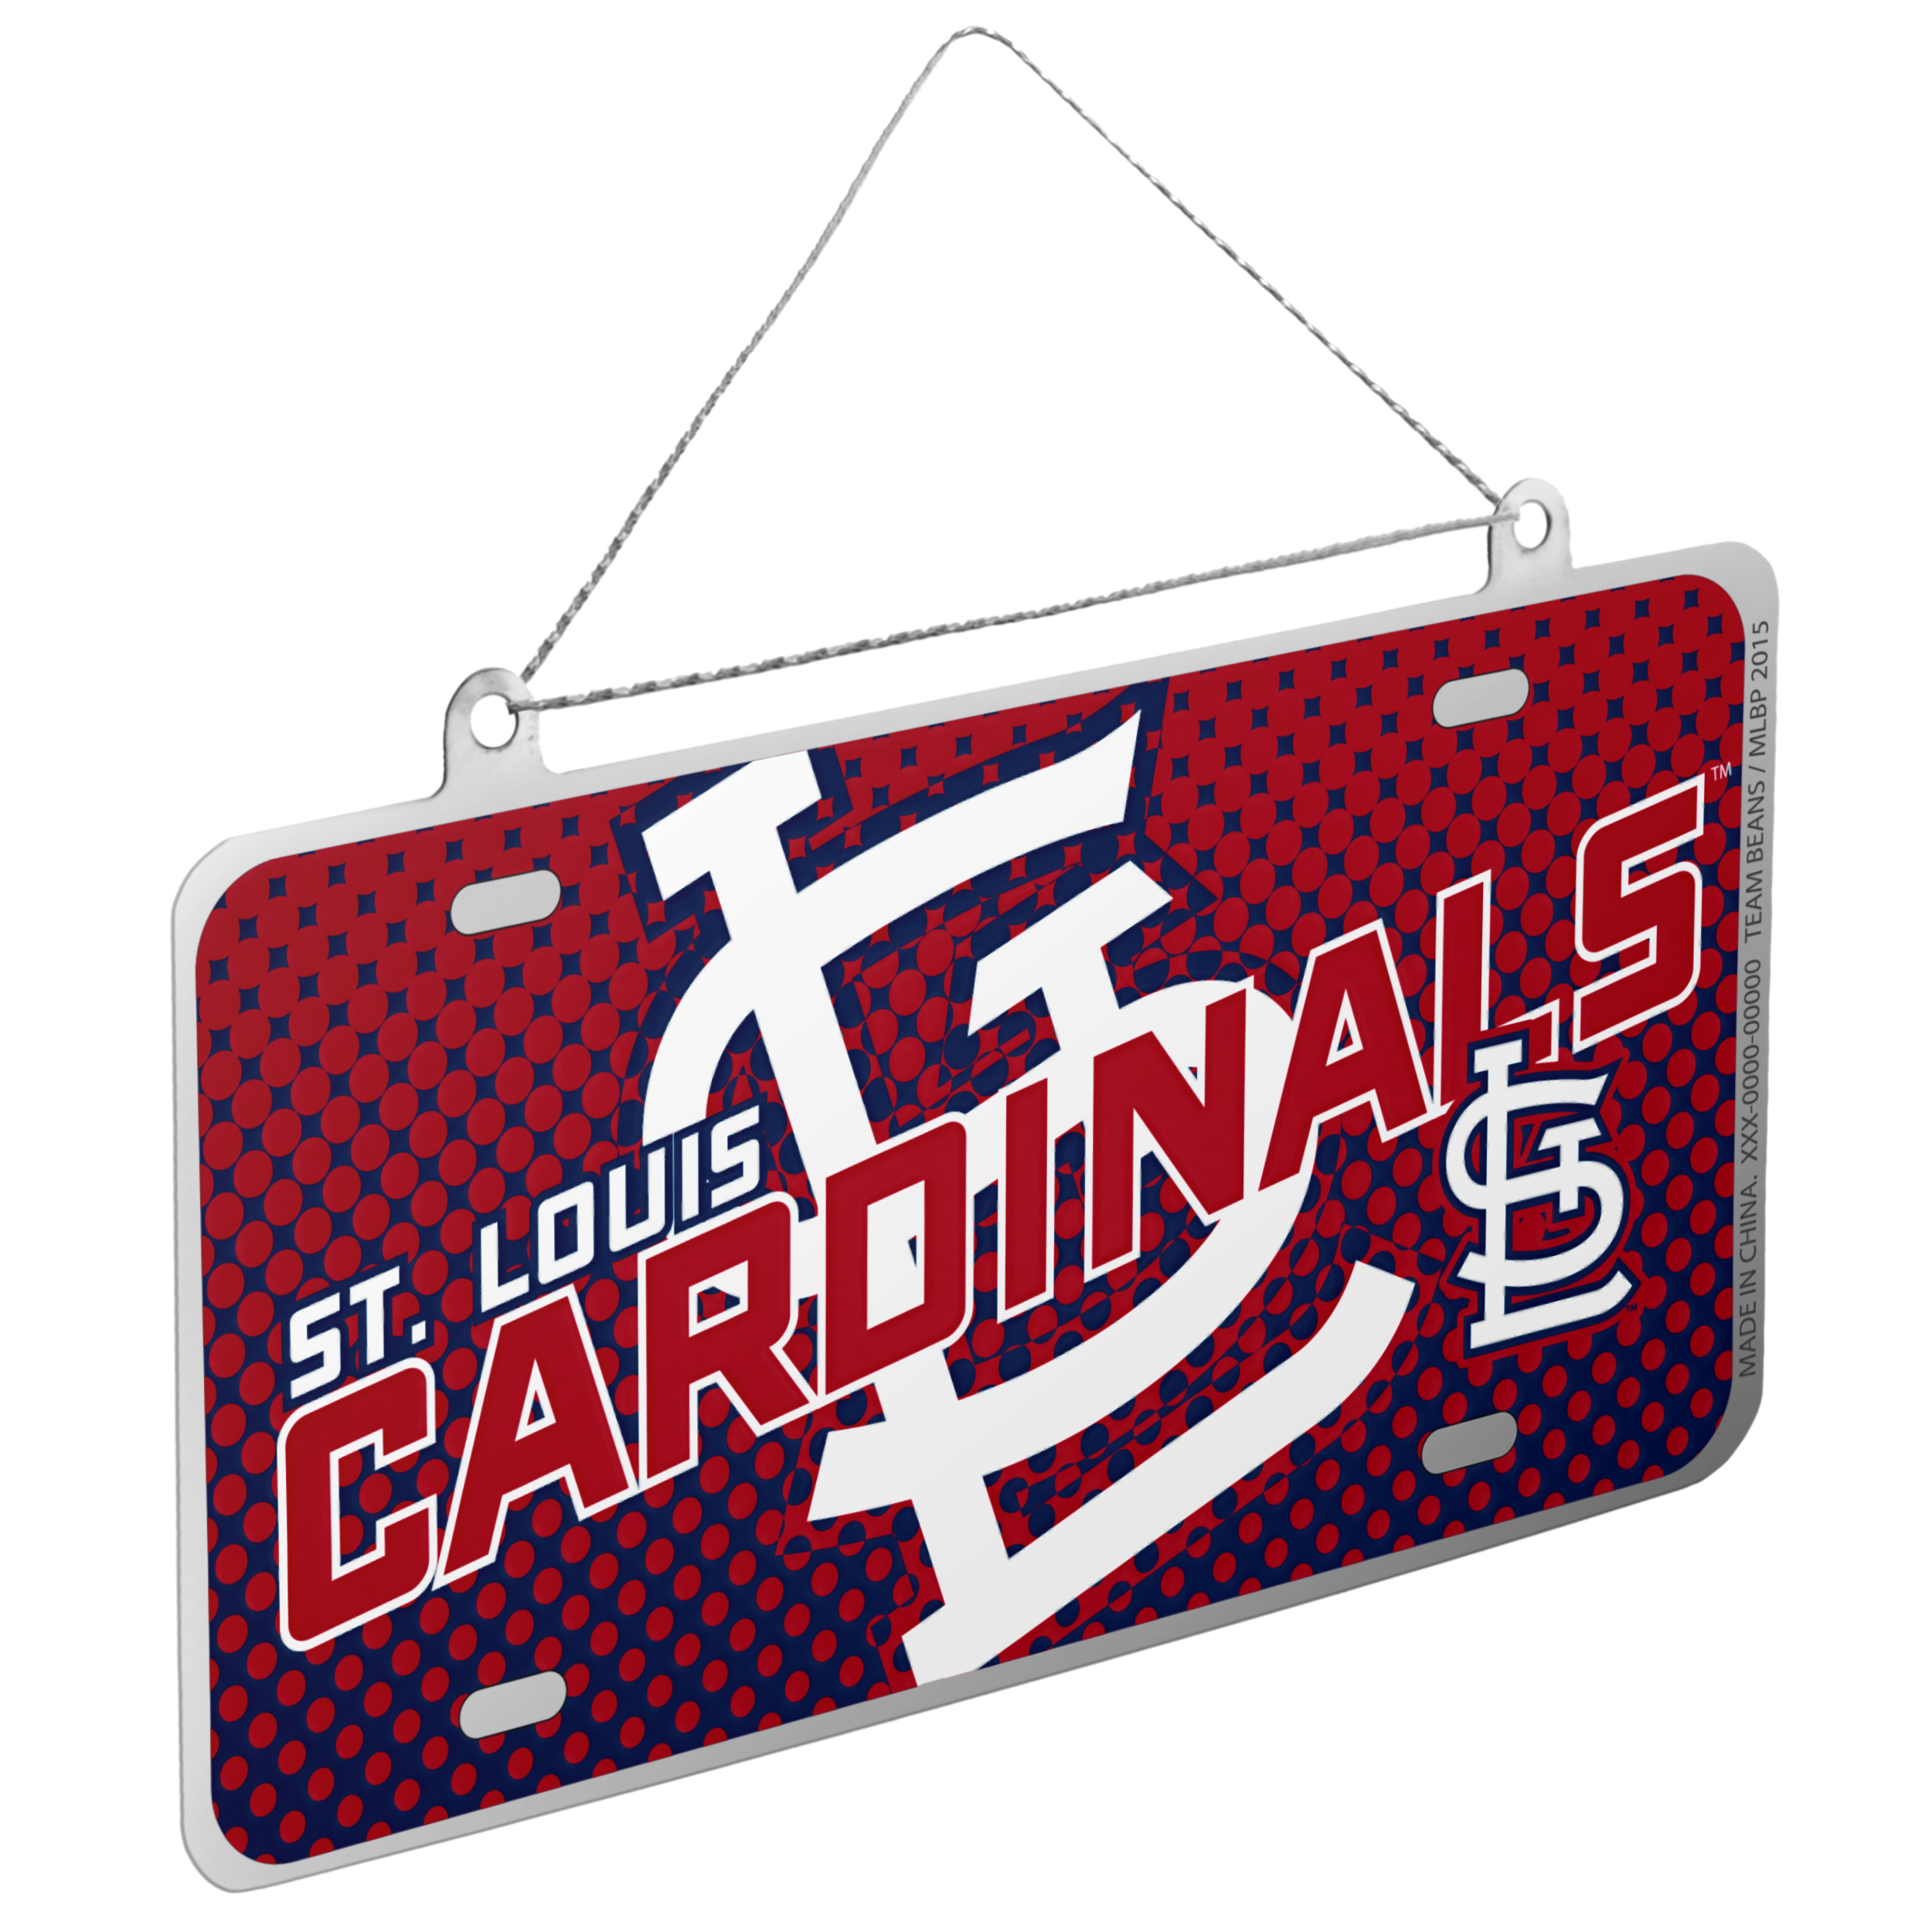 St. Louis Cardinals Official MLB 4 inch  x 2 inch  Metal License Plate Christmas Ornament by Forever Collectibles